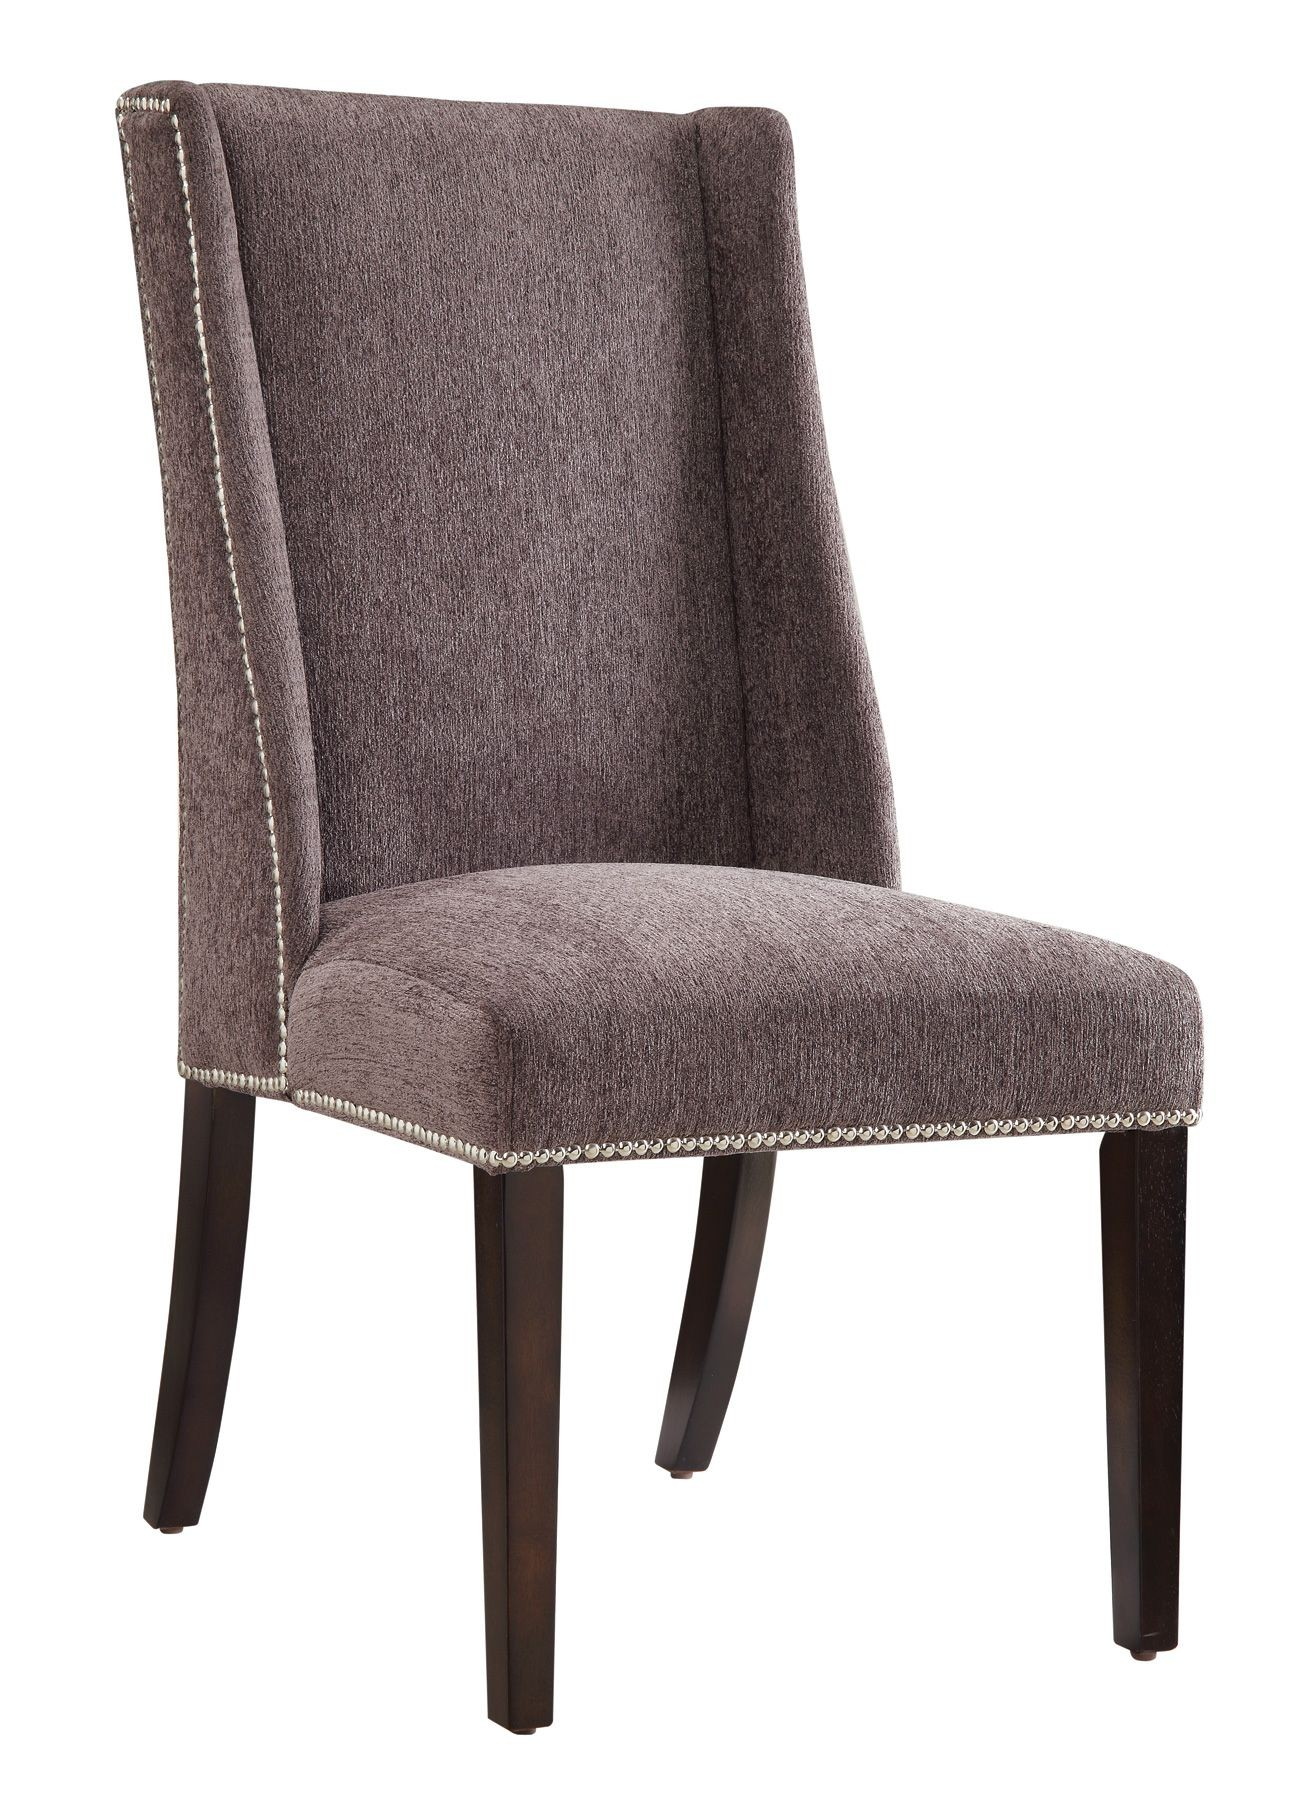 902505 Grey Accent Chair Set of 2 from Coaster  Available